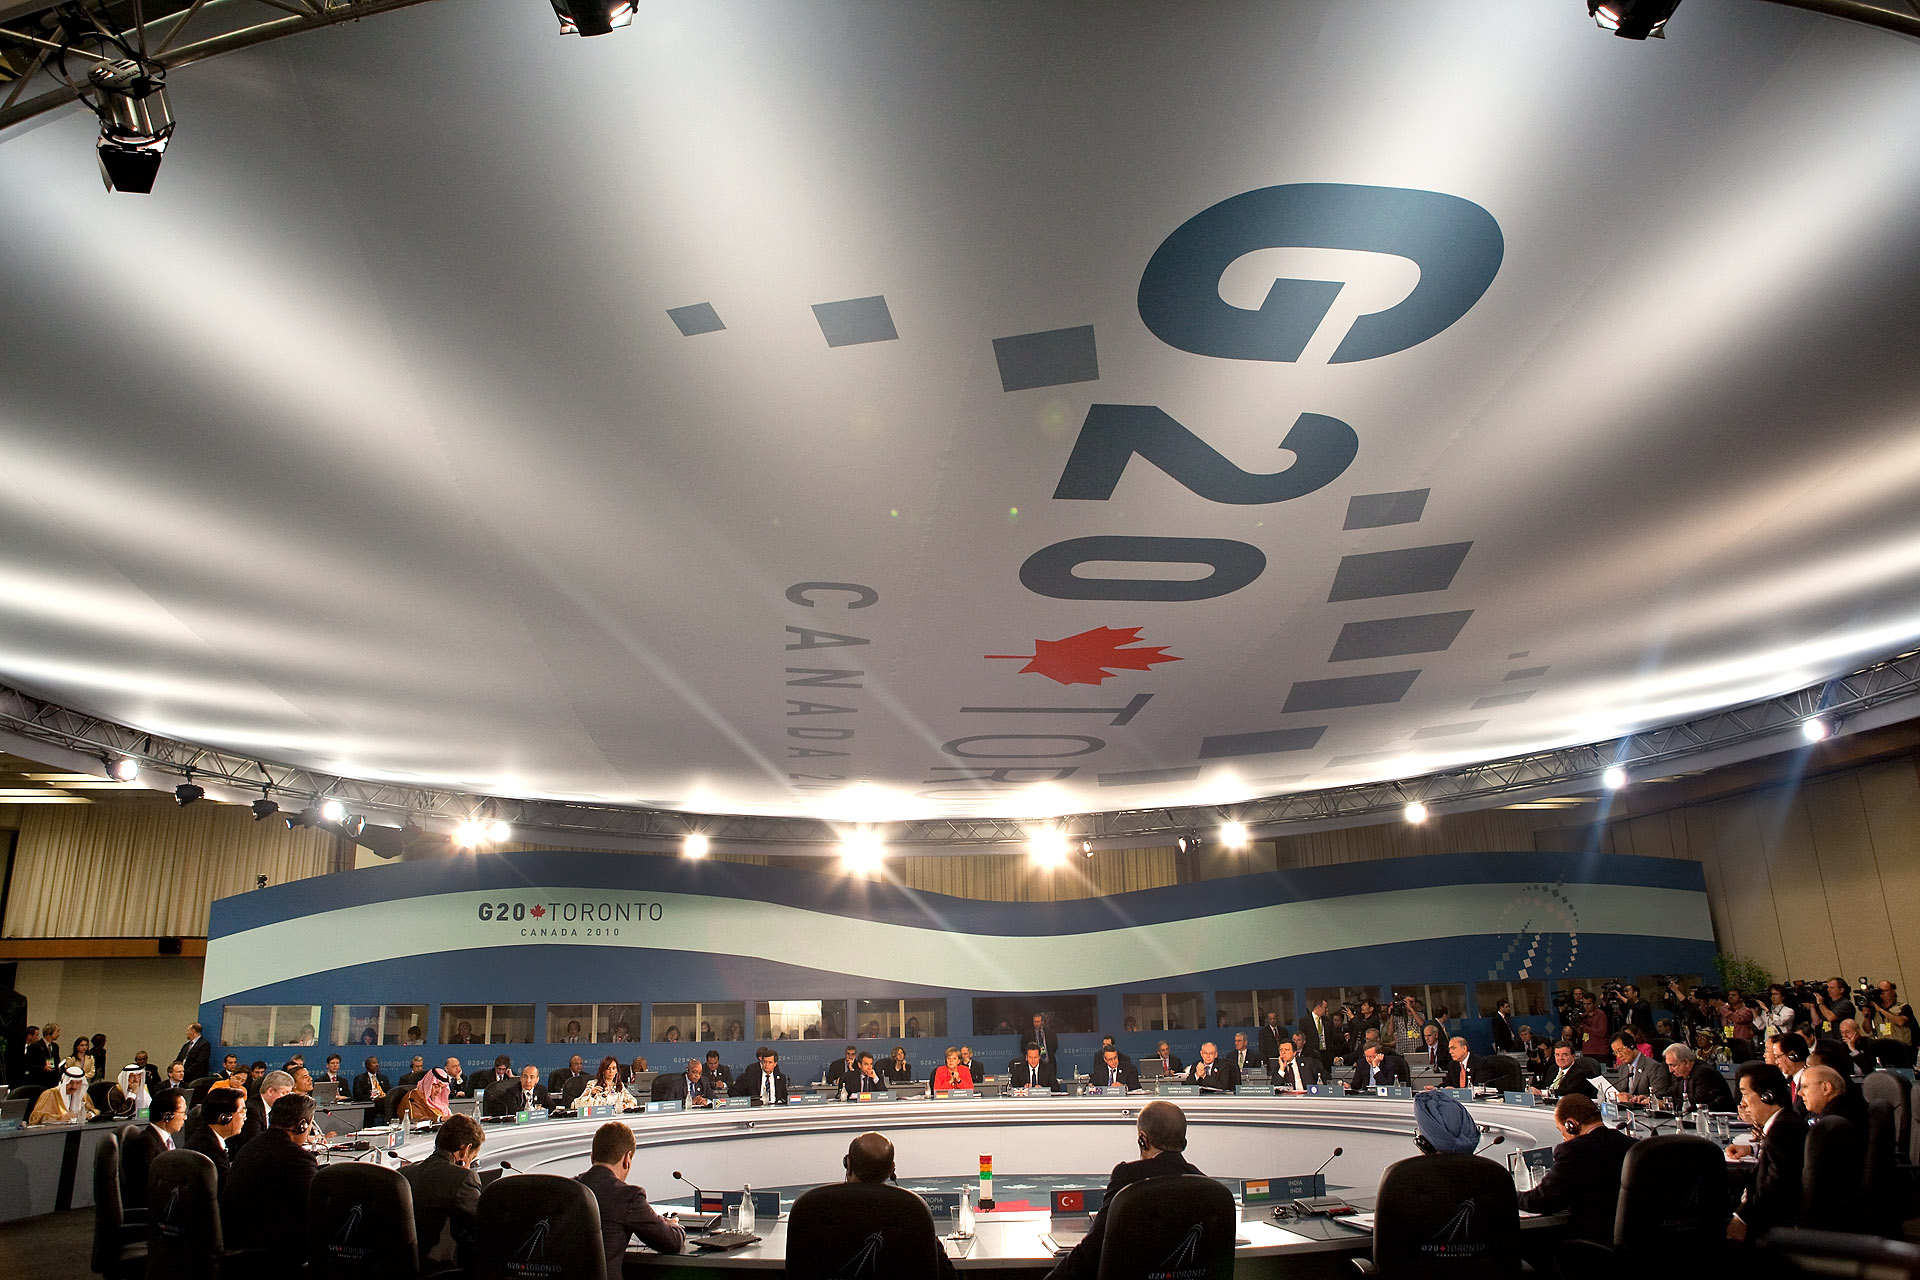 What You Should Know About the G20 Summit